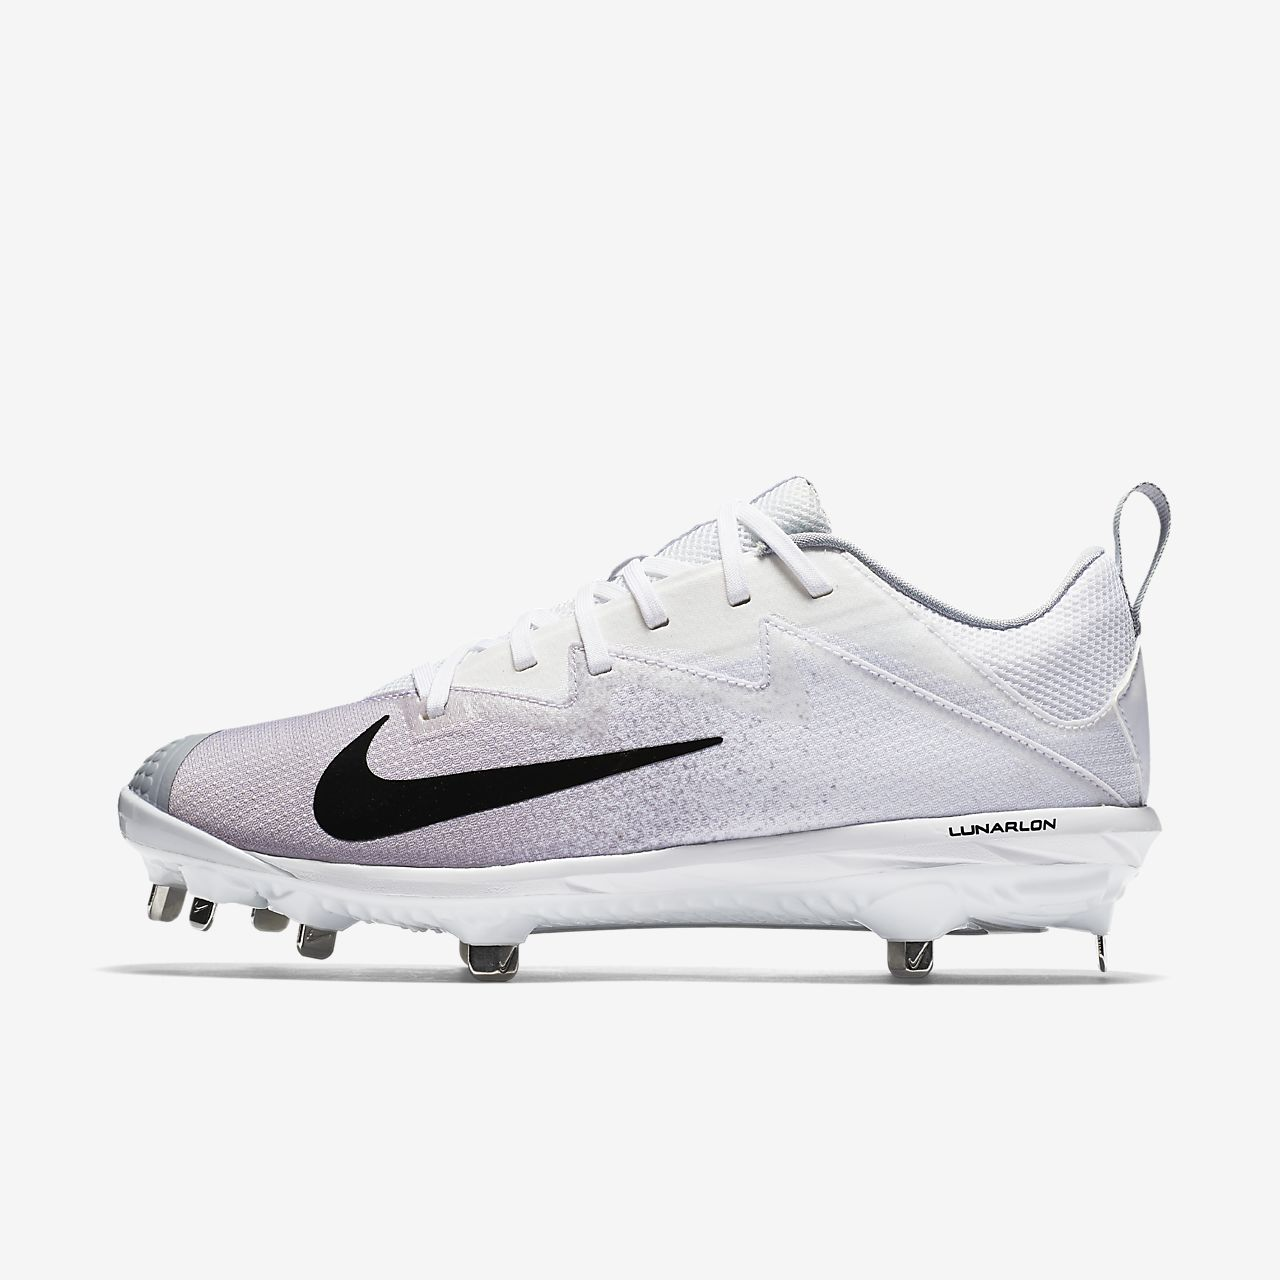 nike trainer collection girls baseball cleats